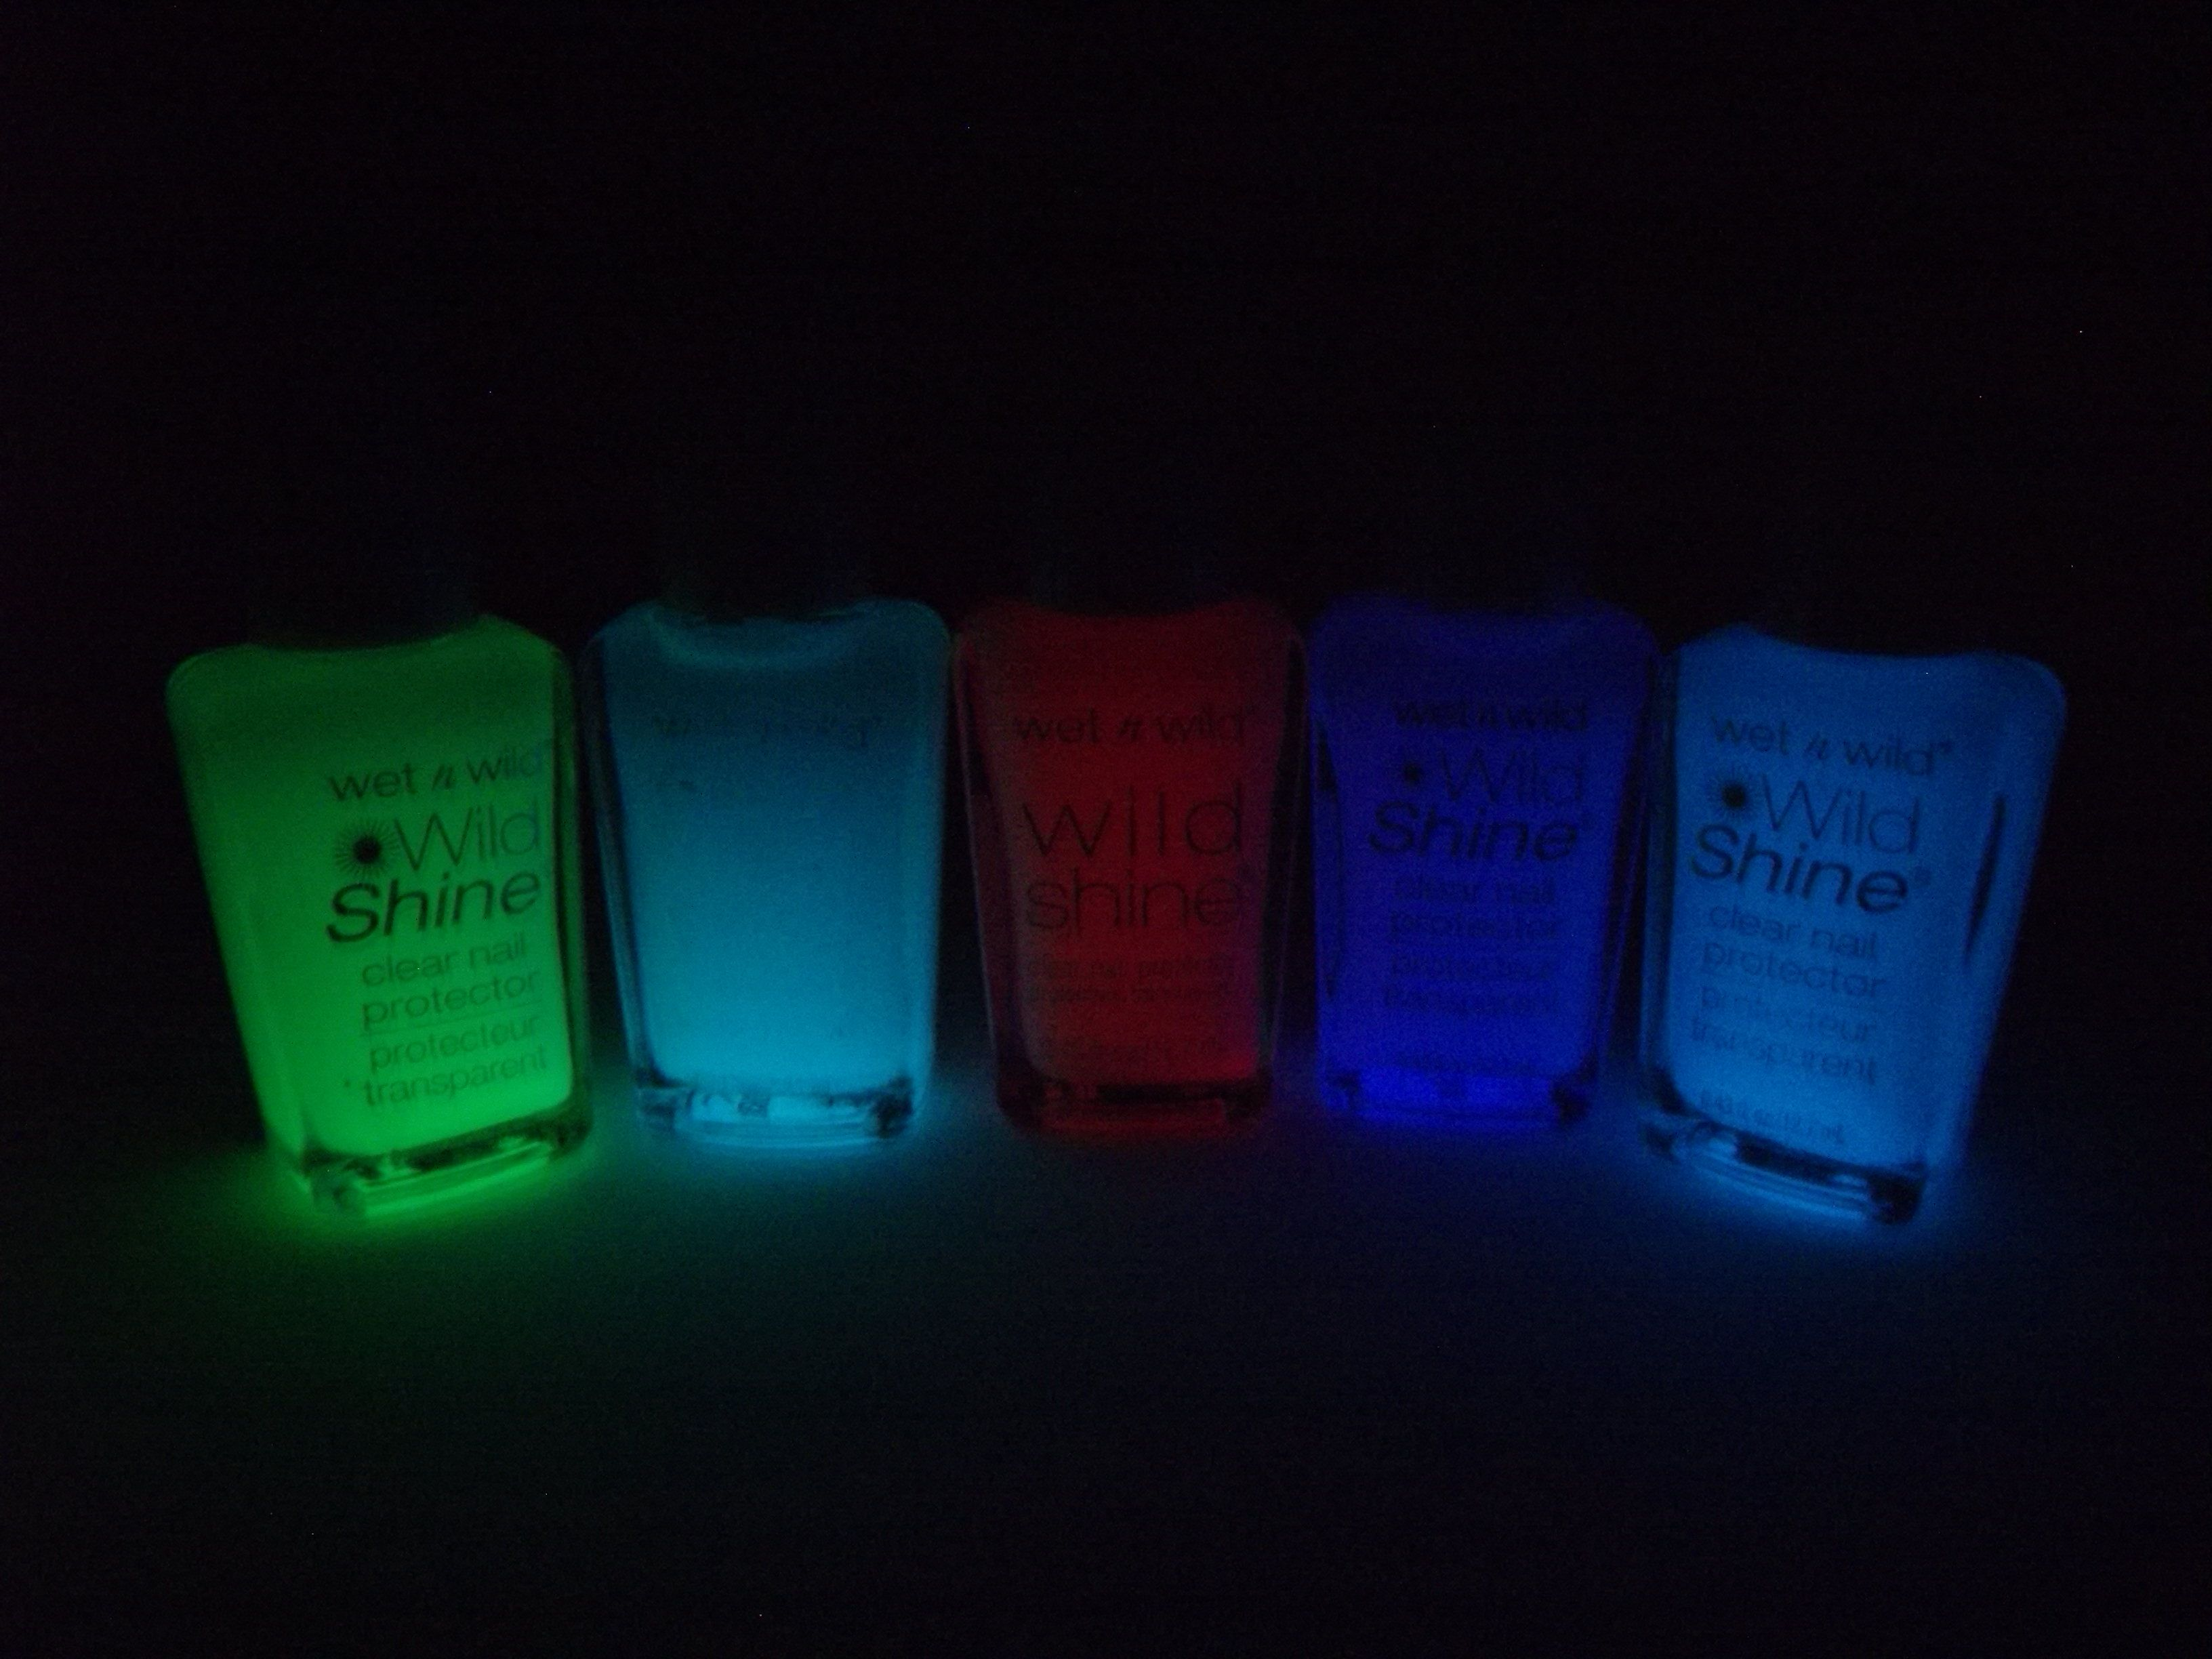 Pin by shana brown on diy epoxy resin pinterest for Glow in the dark resin